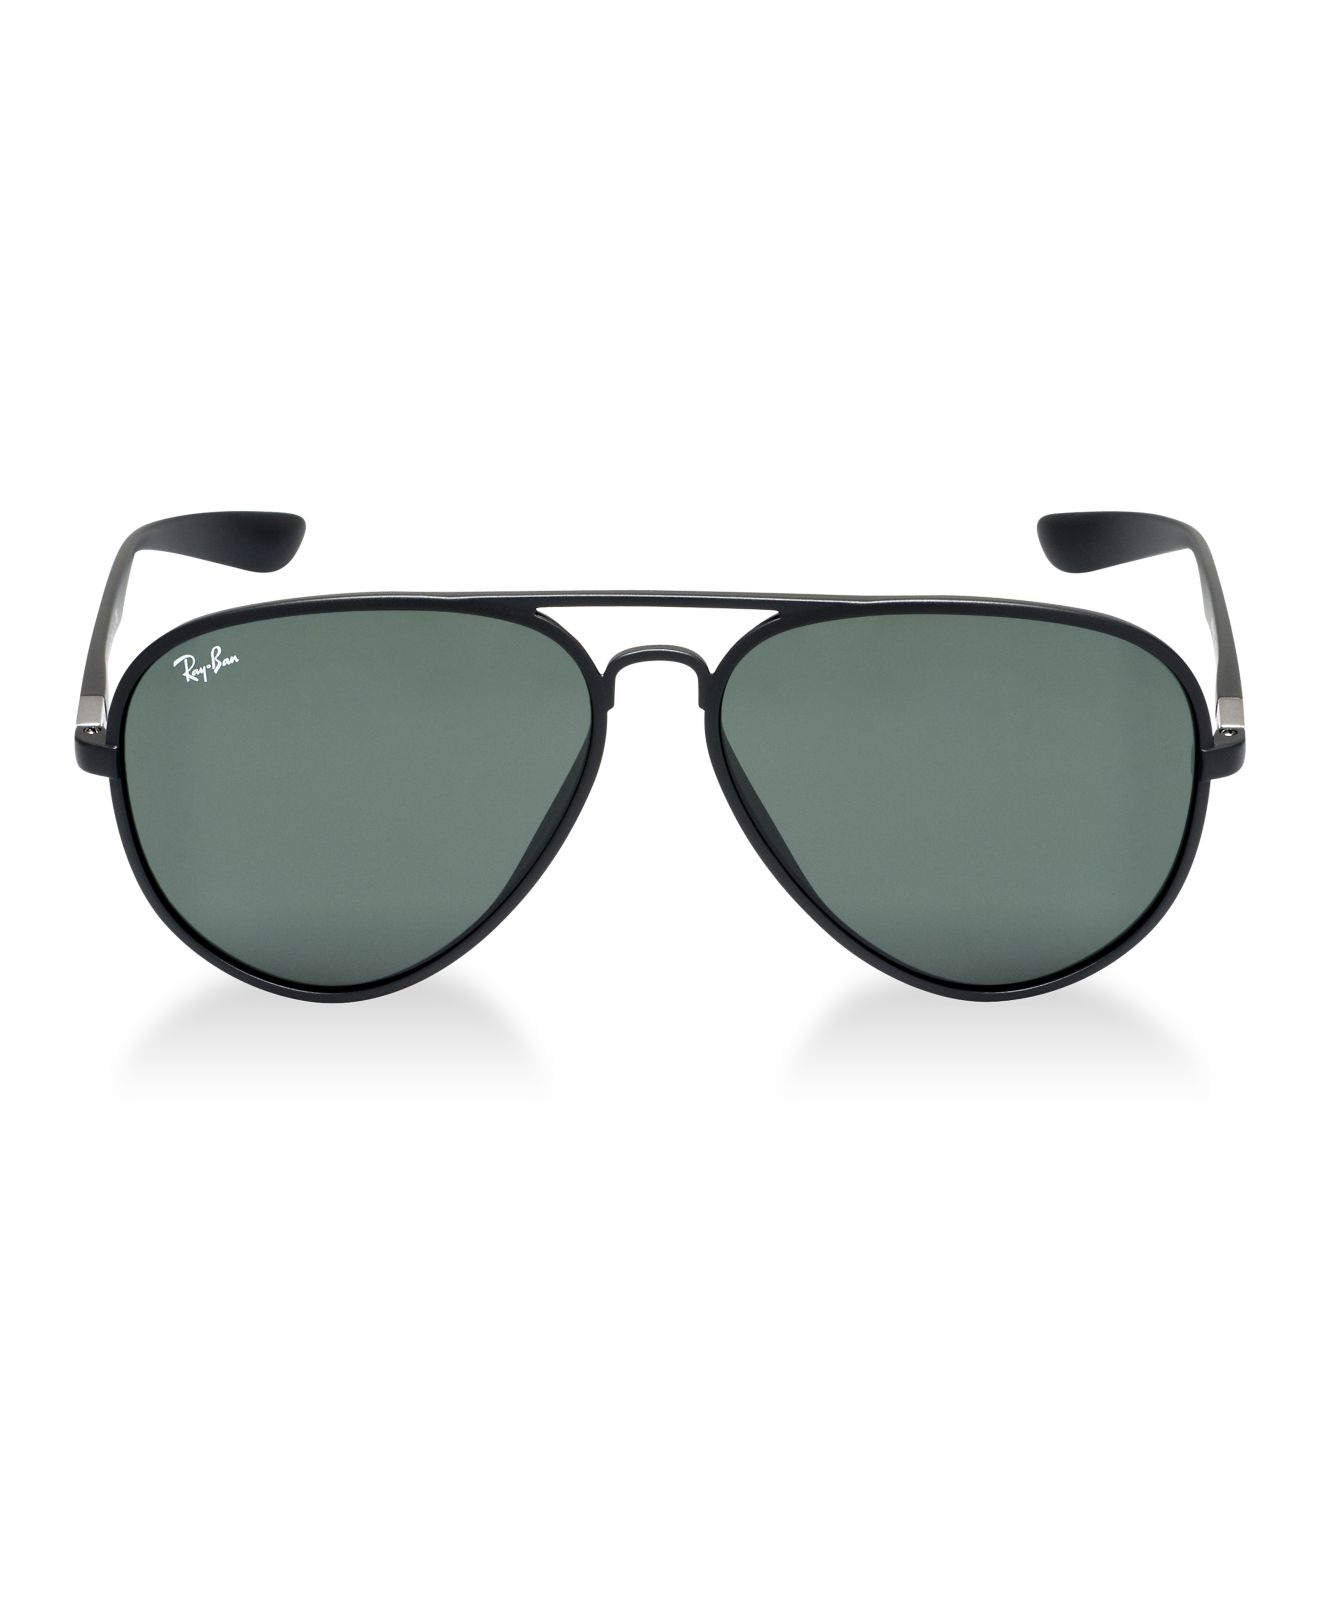 fddc32ec013 Gallery. Previously sold at  Macy s · Men s Aviator Sunglasses Men s Ray Ban  ...